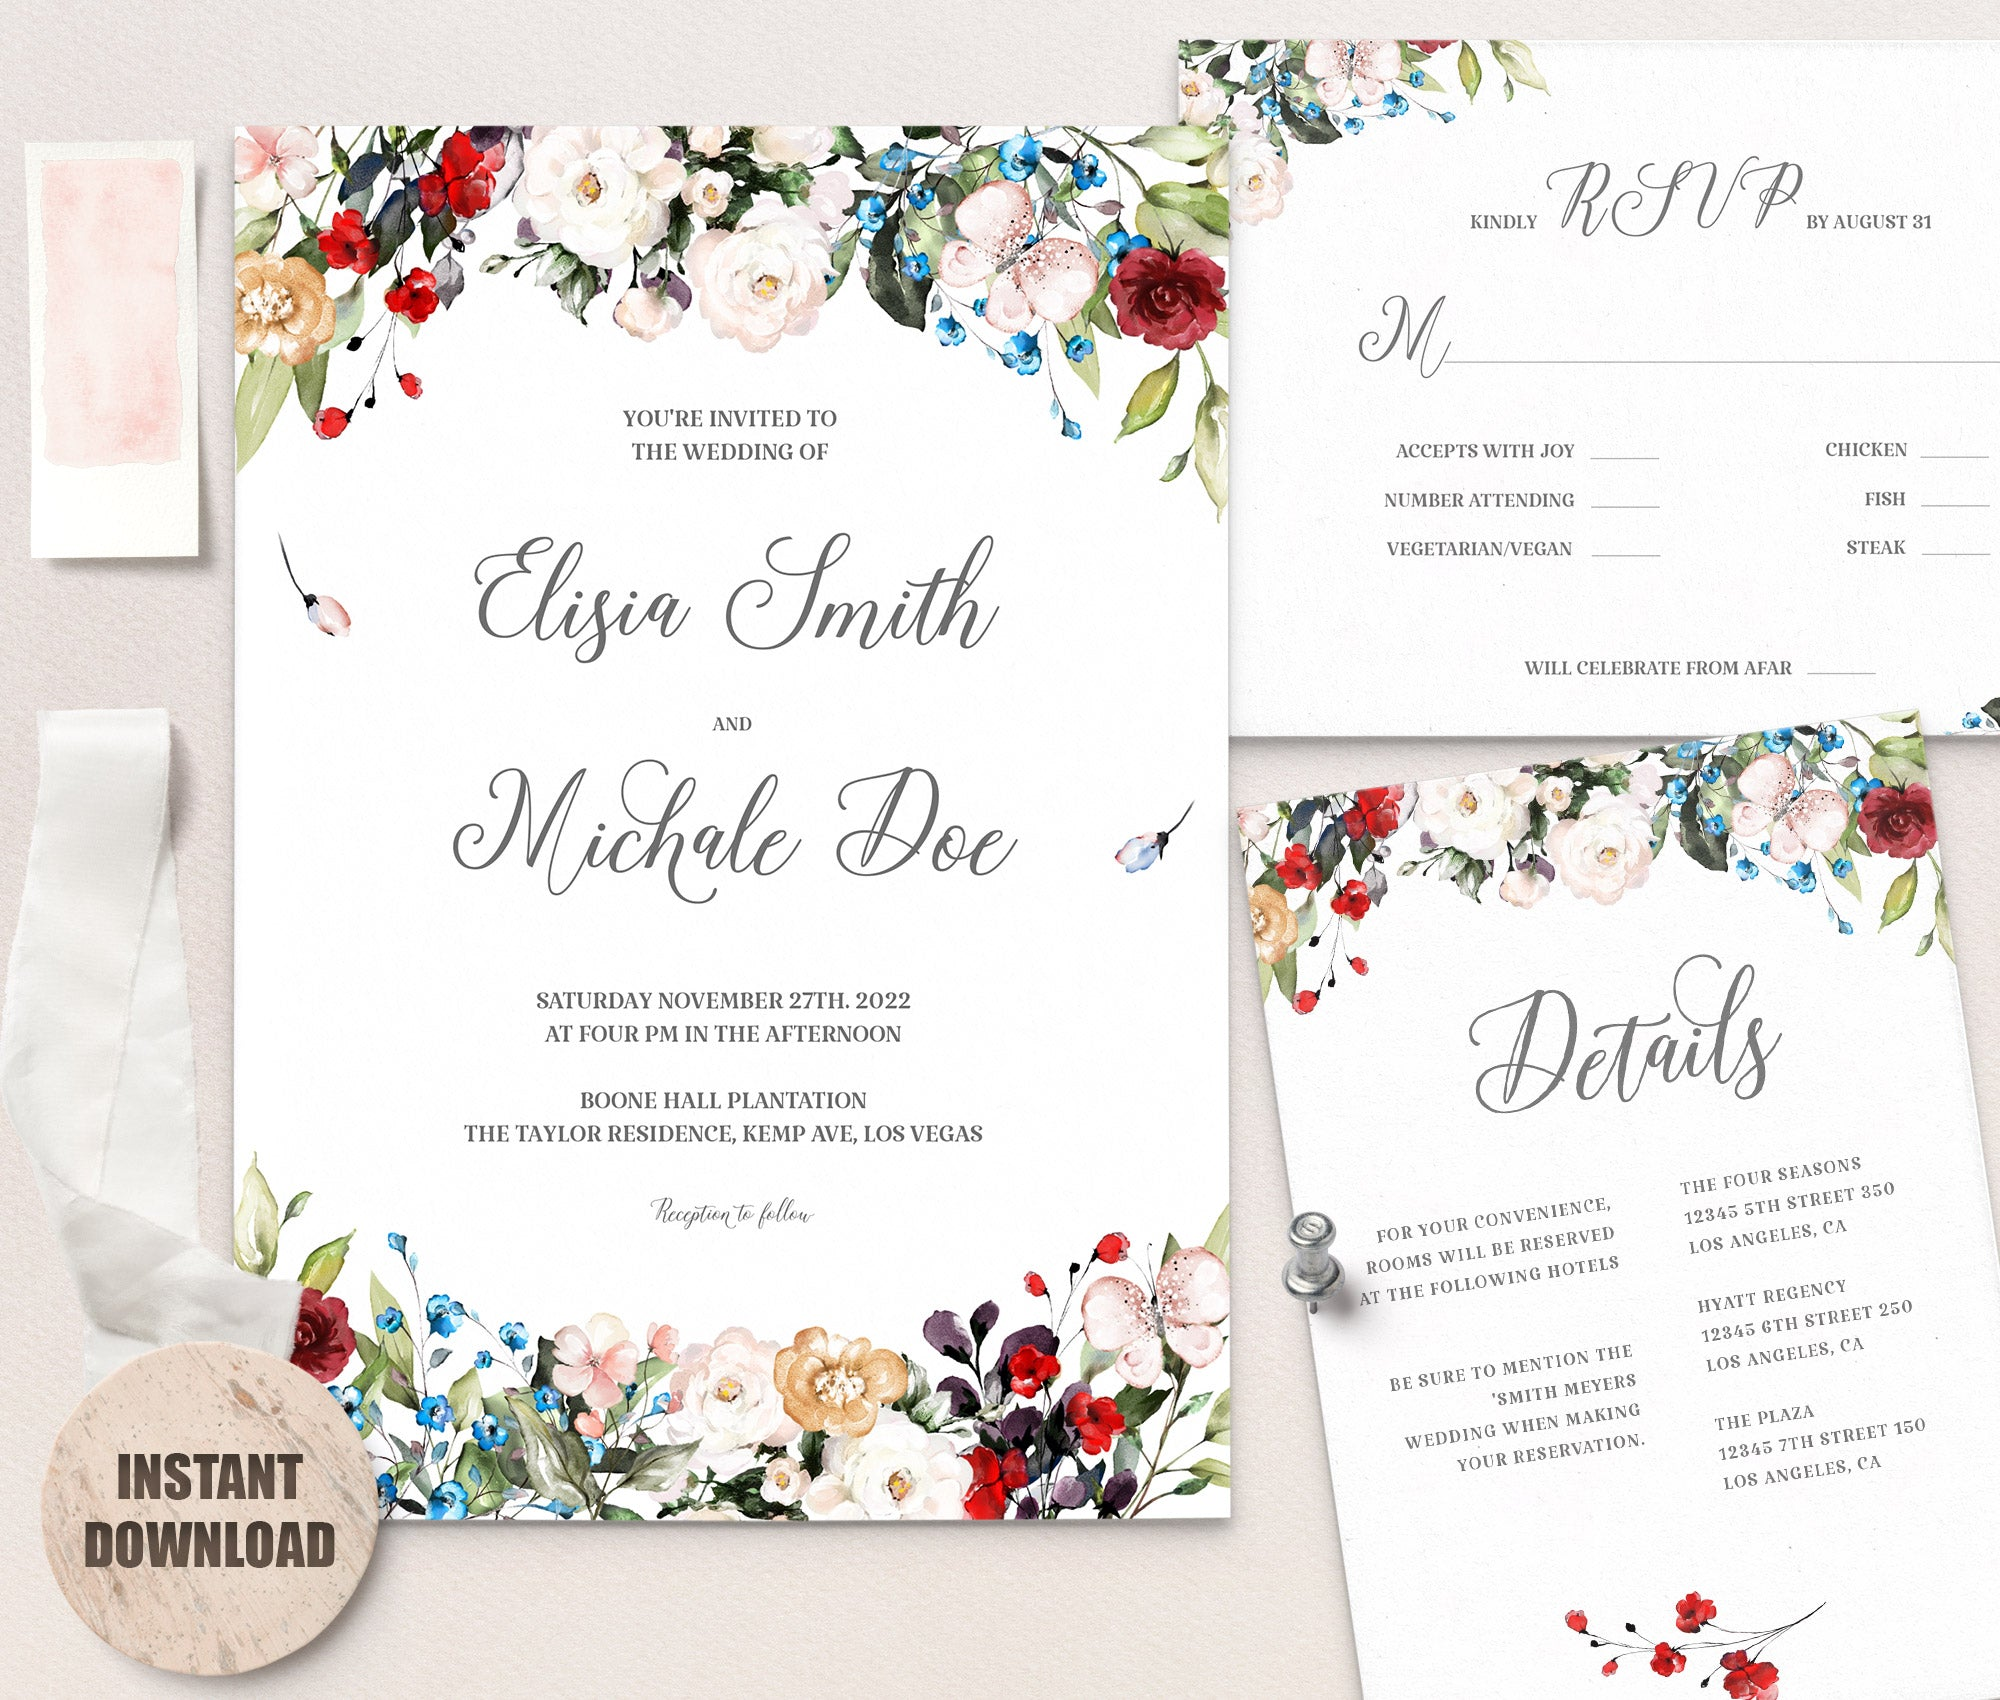 LOVAL Wedding Template Bundles set 4